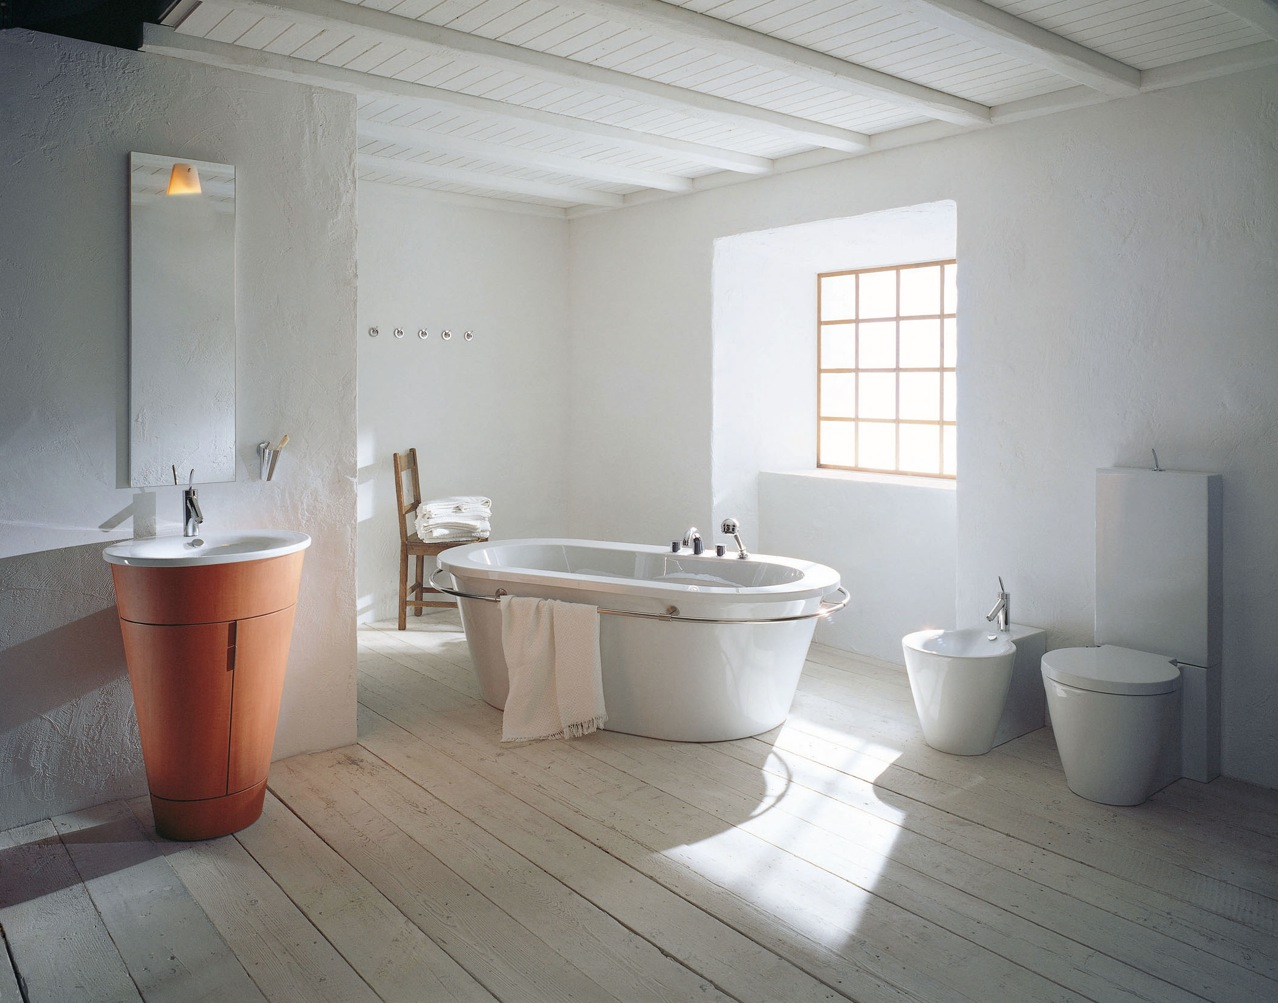 Philipe starck rustic modern bathroom decor interior - Modern bathroom images ...